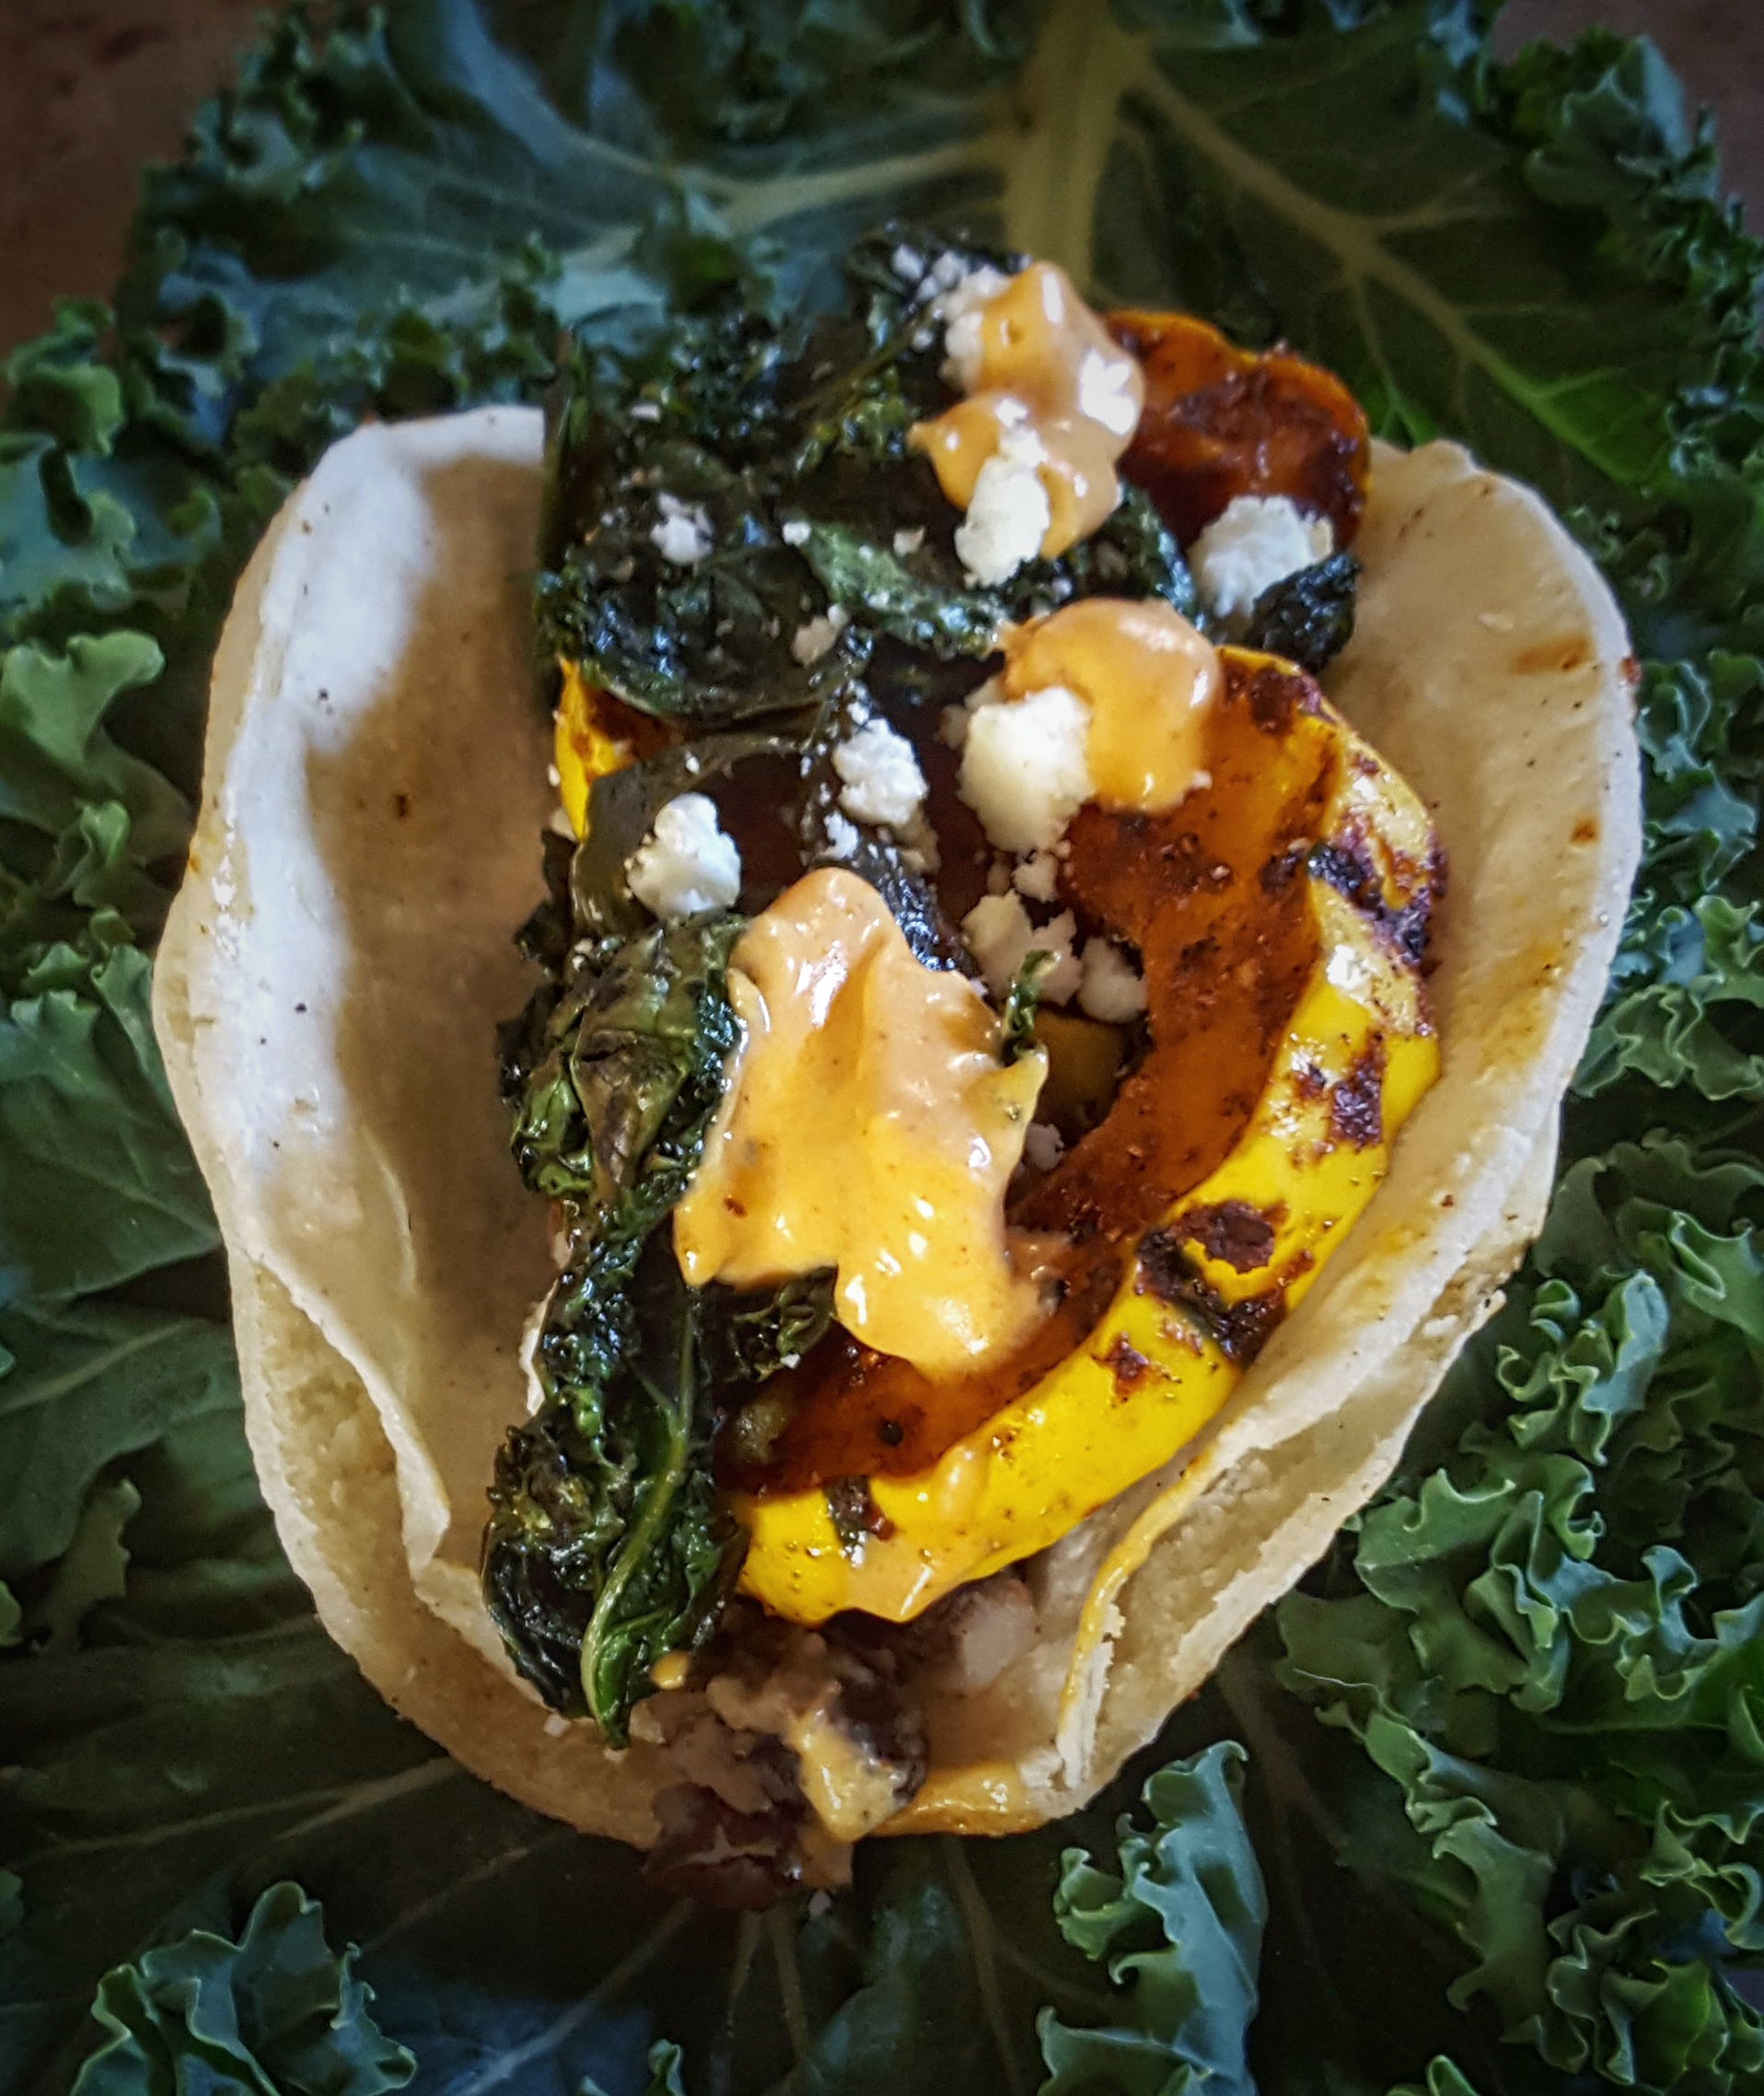 Roasted Delicata Squash and Black Bean Tacos with Smoked Spanish Paprika and Chili Aioli | Simply Sophisticated Cooking